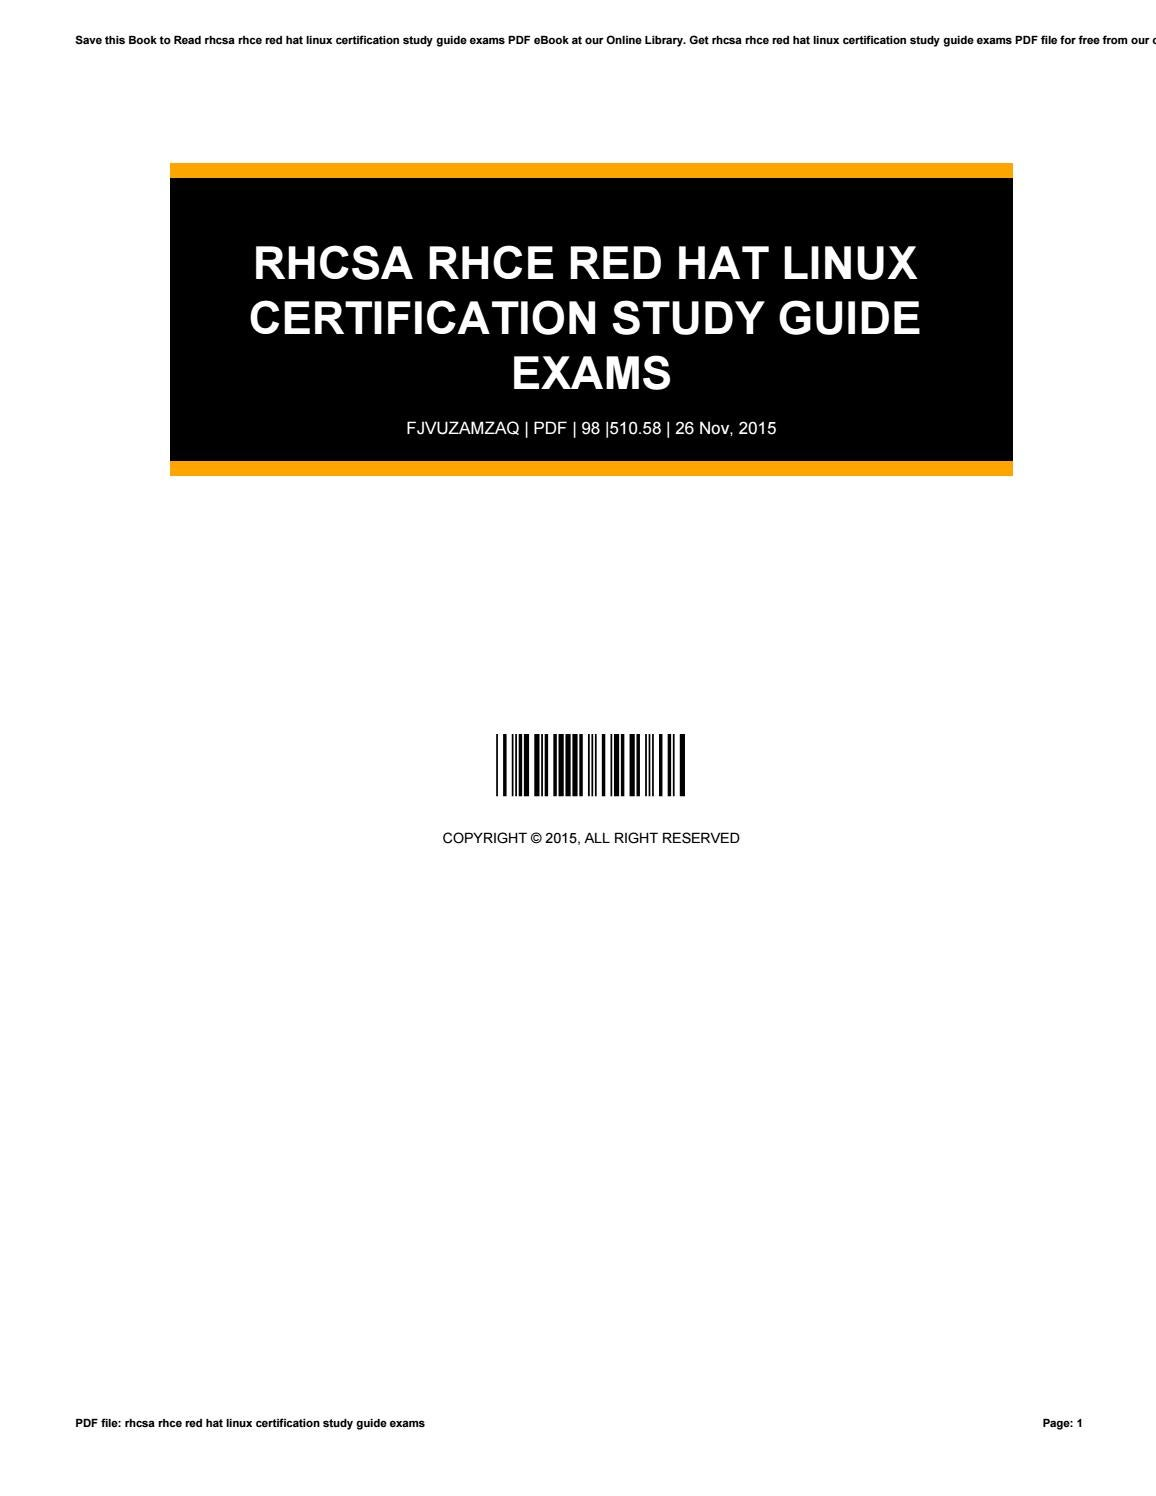 Rhcsa Rhce Red Hat Linux Certification Study Guide Exams By